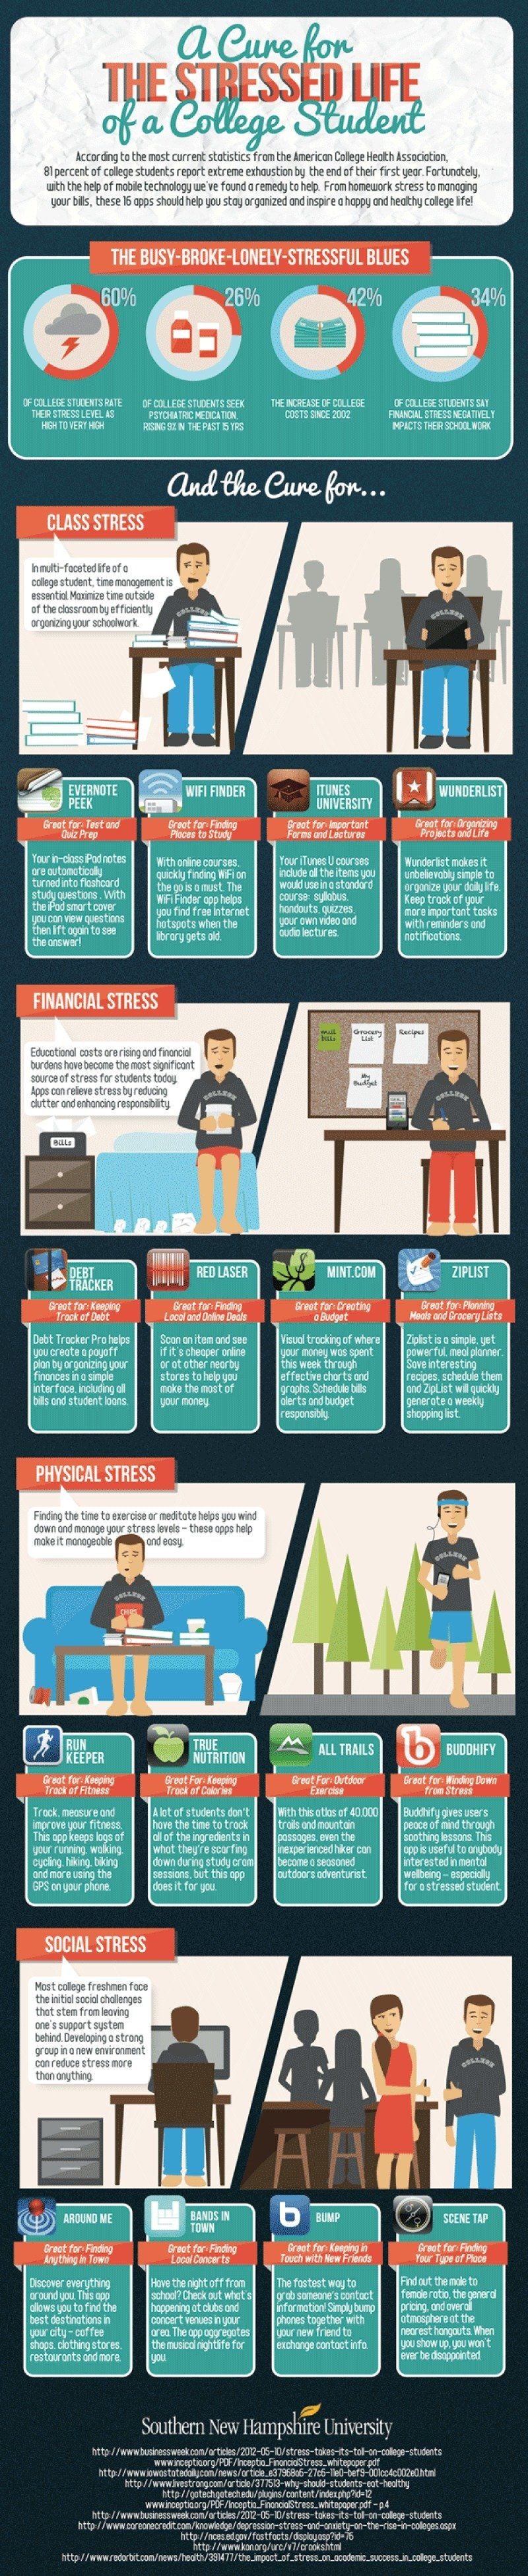 apps to help stressed out college students infographic  16 apps to help stressed out college students infographic infographic file